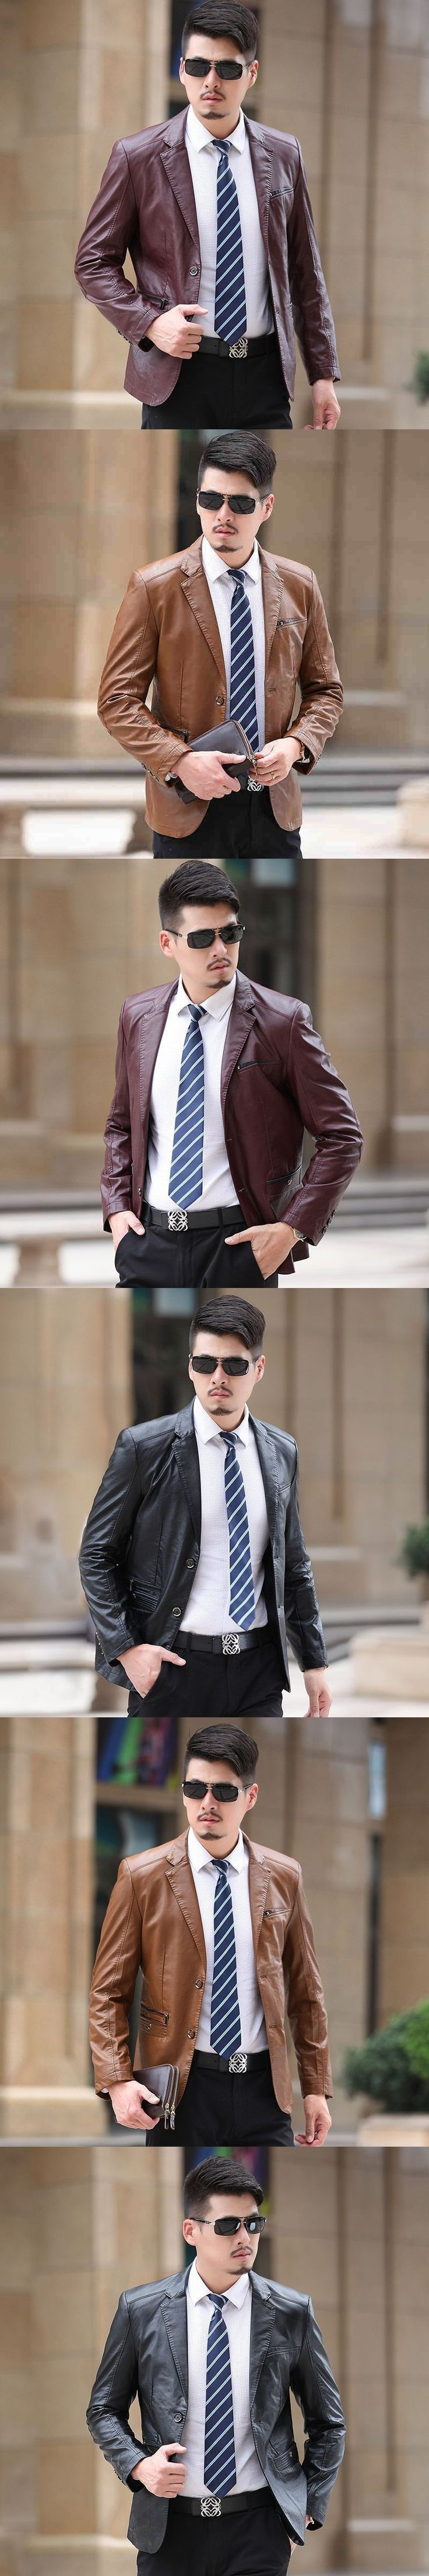 Leather jackets men's suit collar men leather suit slim single-breasted leather jacket male spring fashion black brown big size